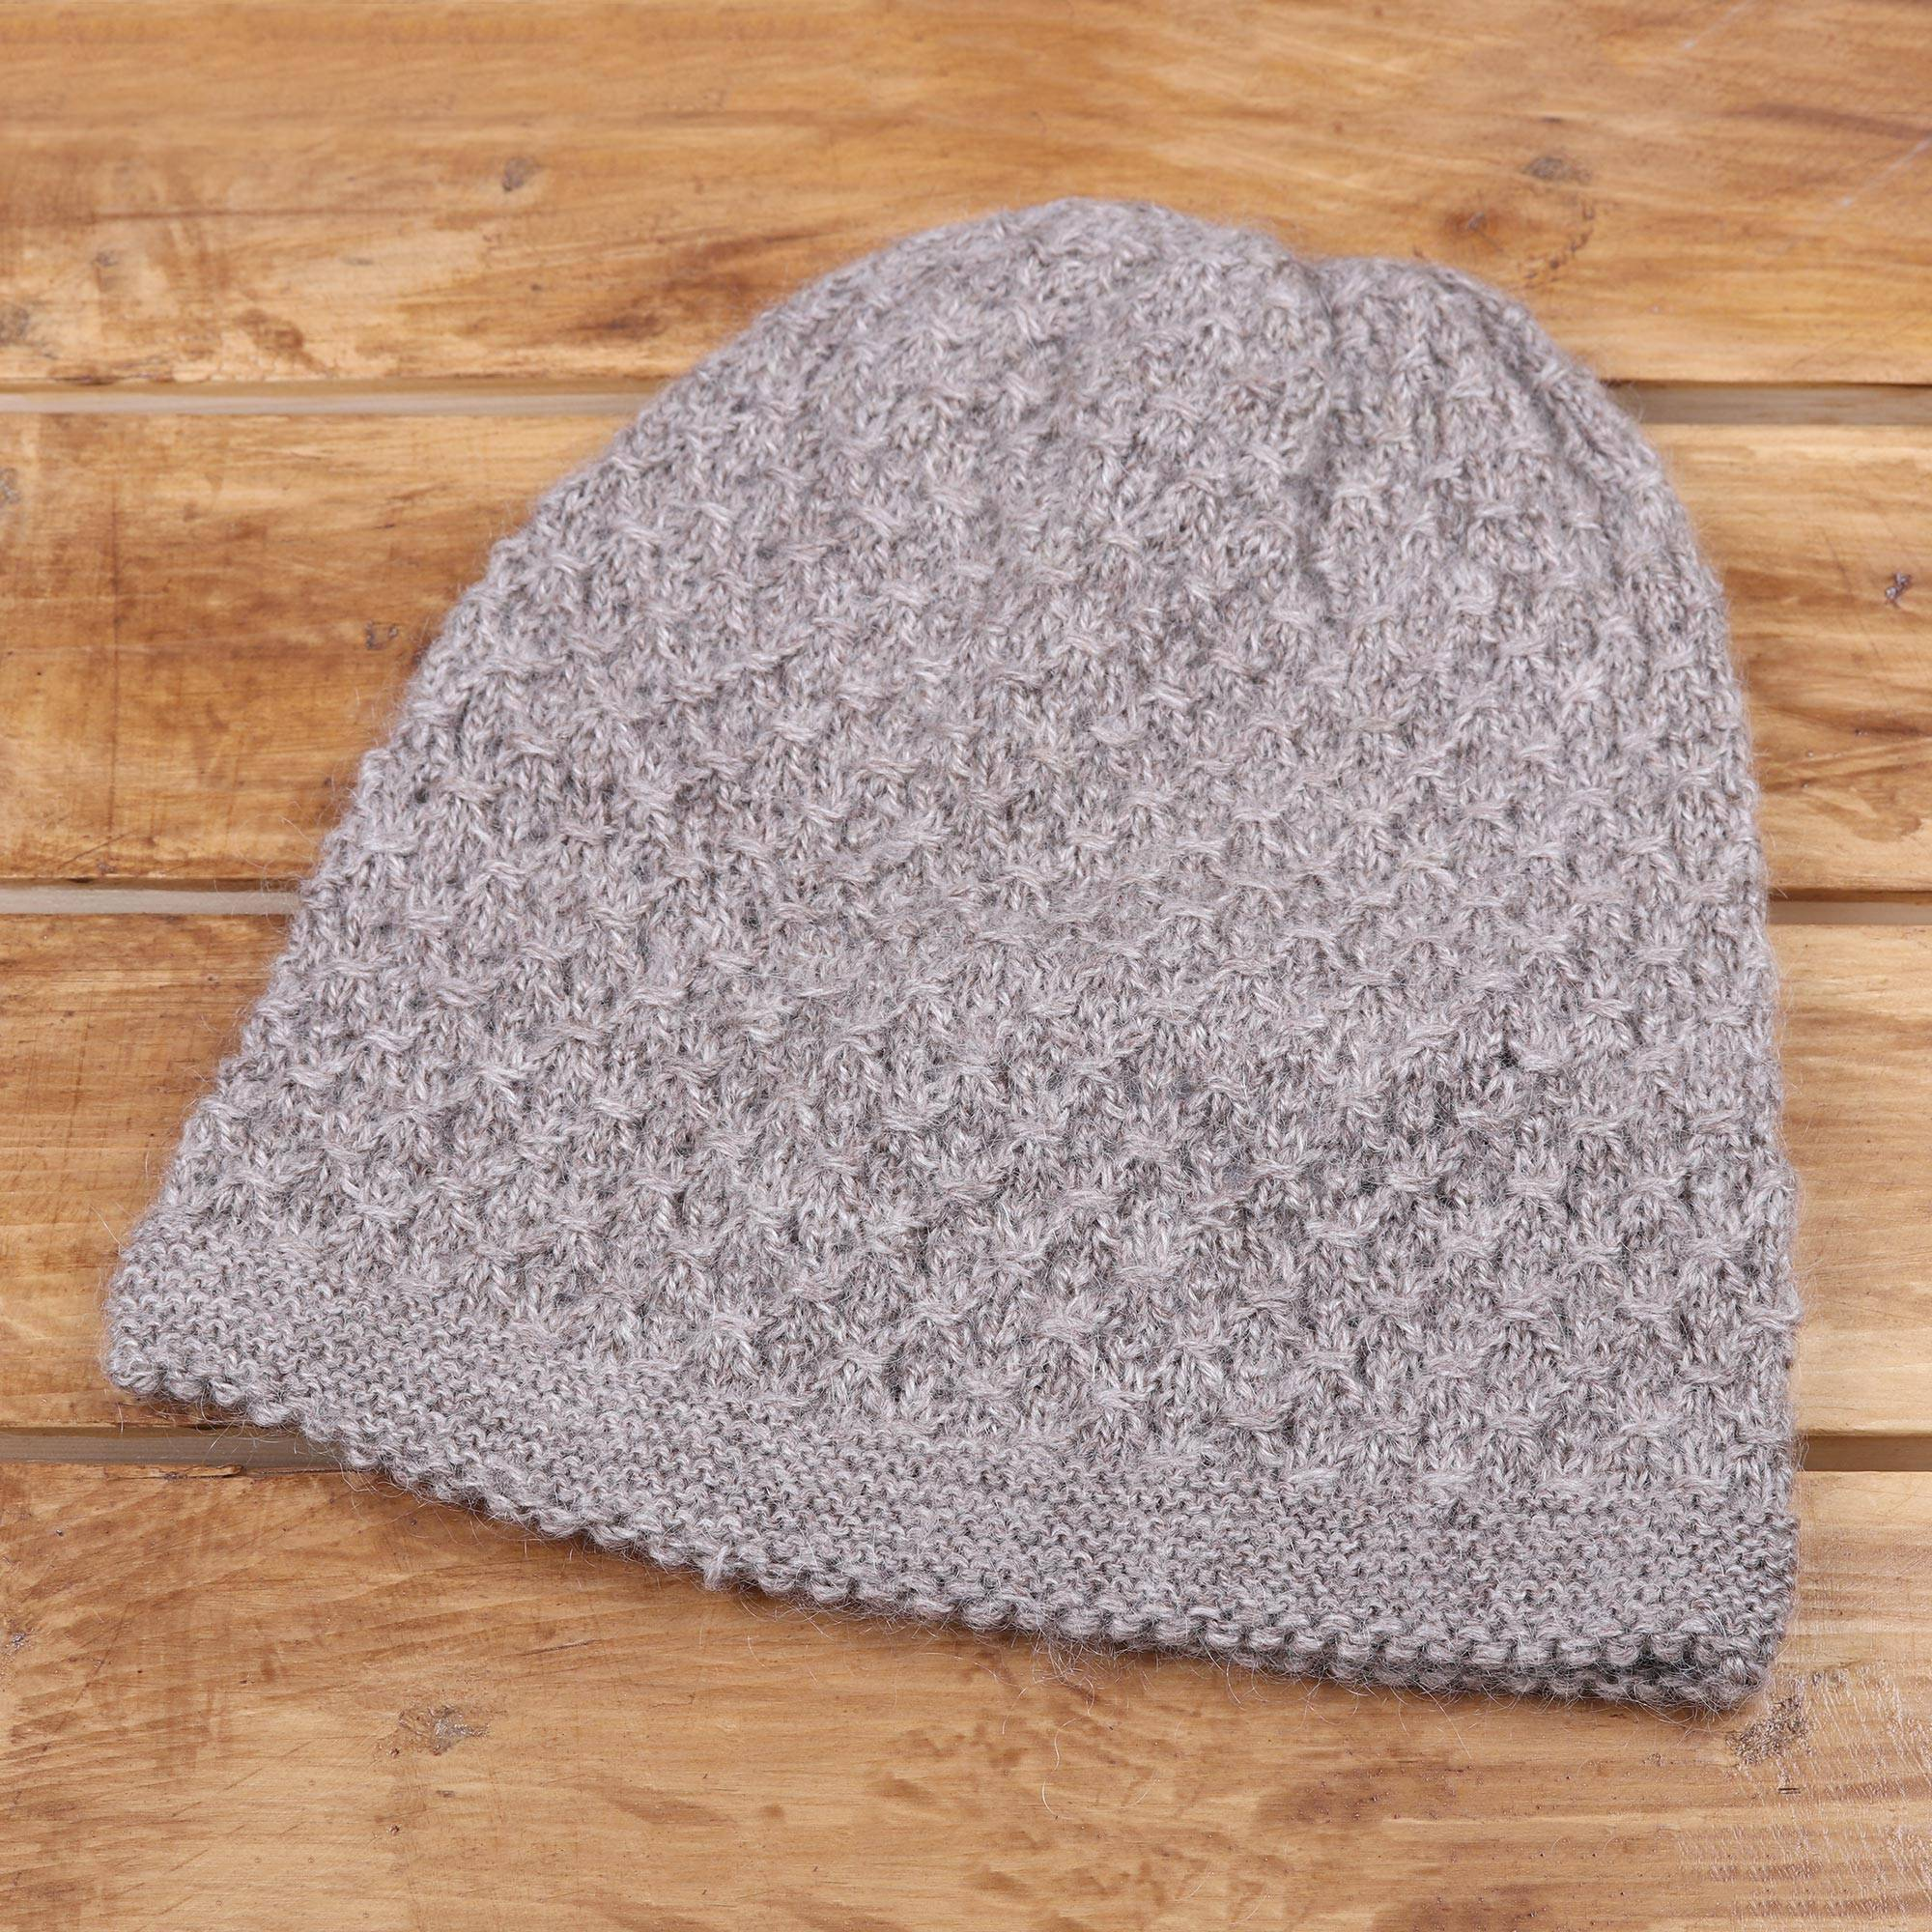 Himalayan Comfort in Lilac - Hand Knitted Lilac Wool Blend Hat from India 4bbd0274866